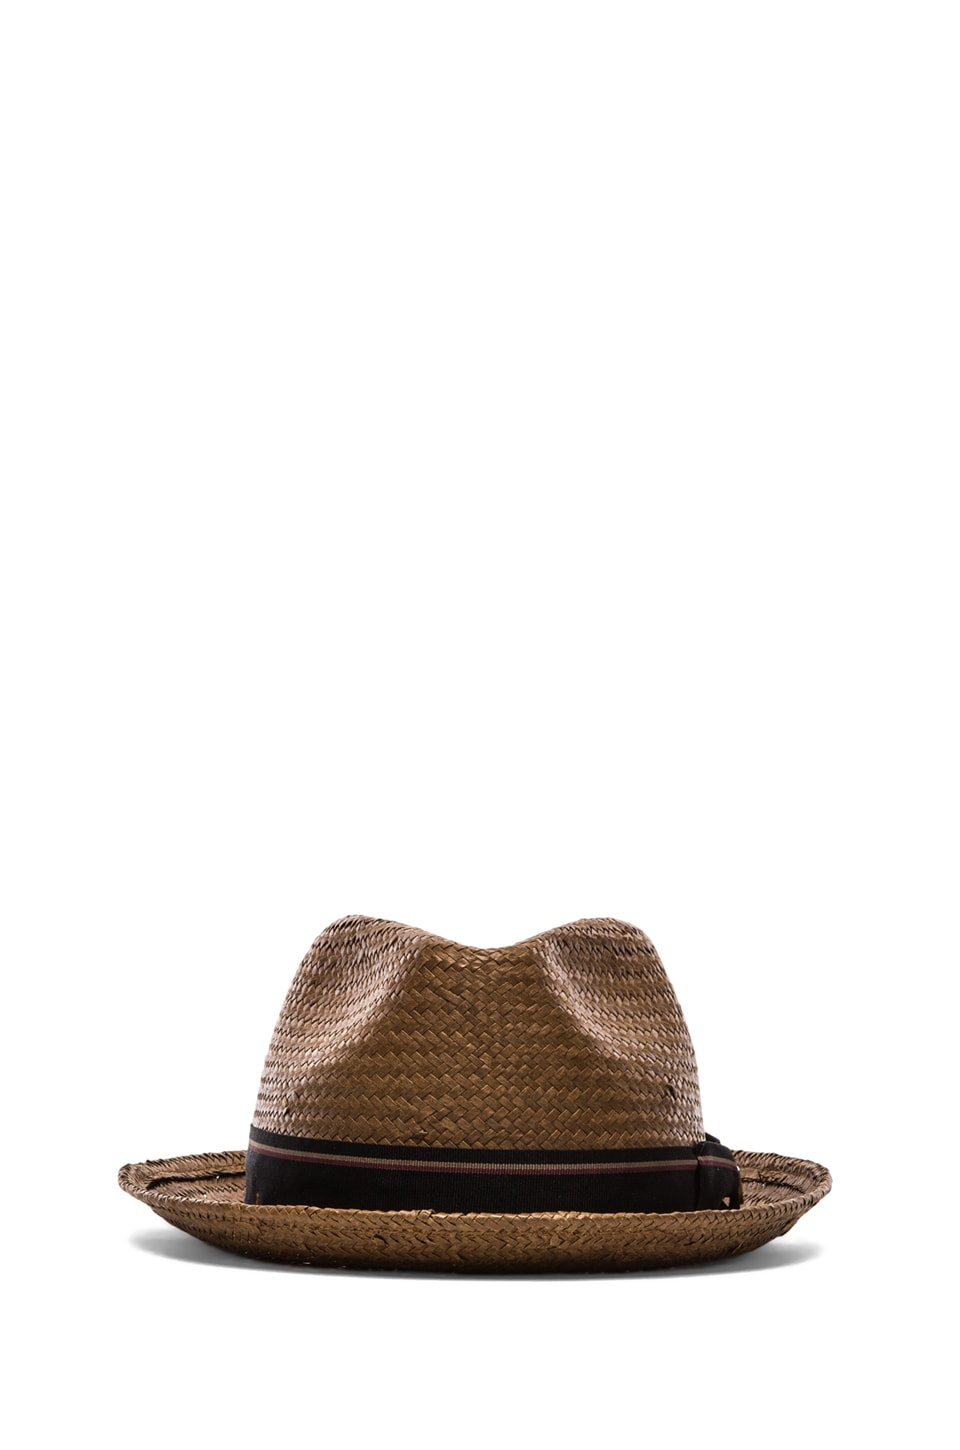 Brixton Castor Brown Straw Hat